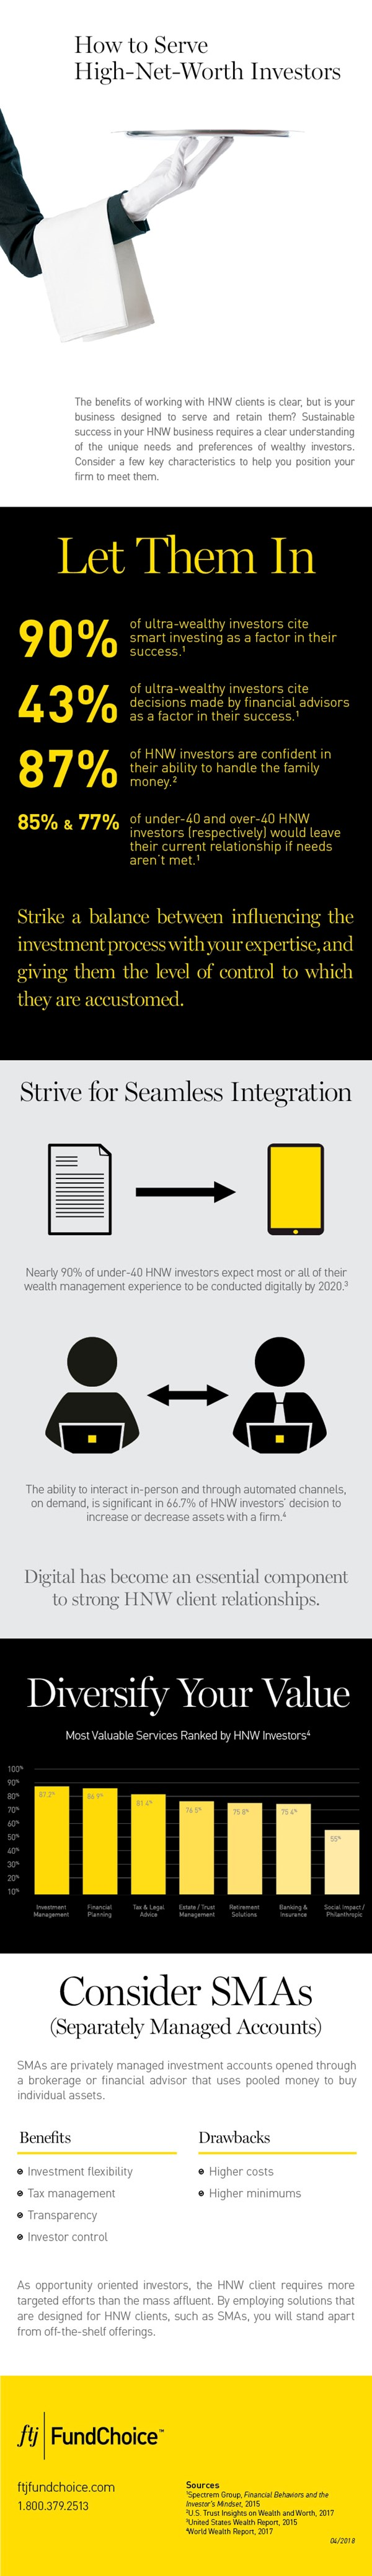 Infographic - How to Serve High-Net-Worth Investors